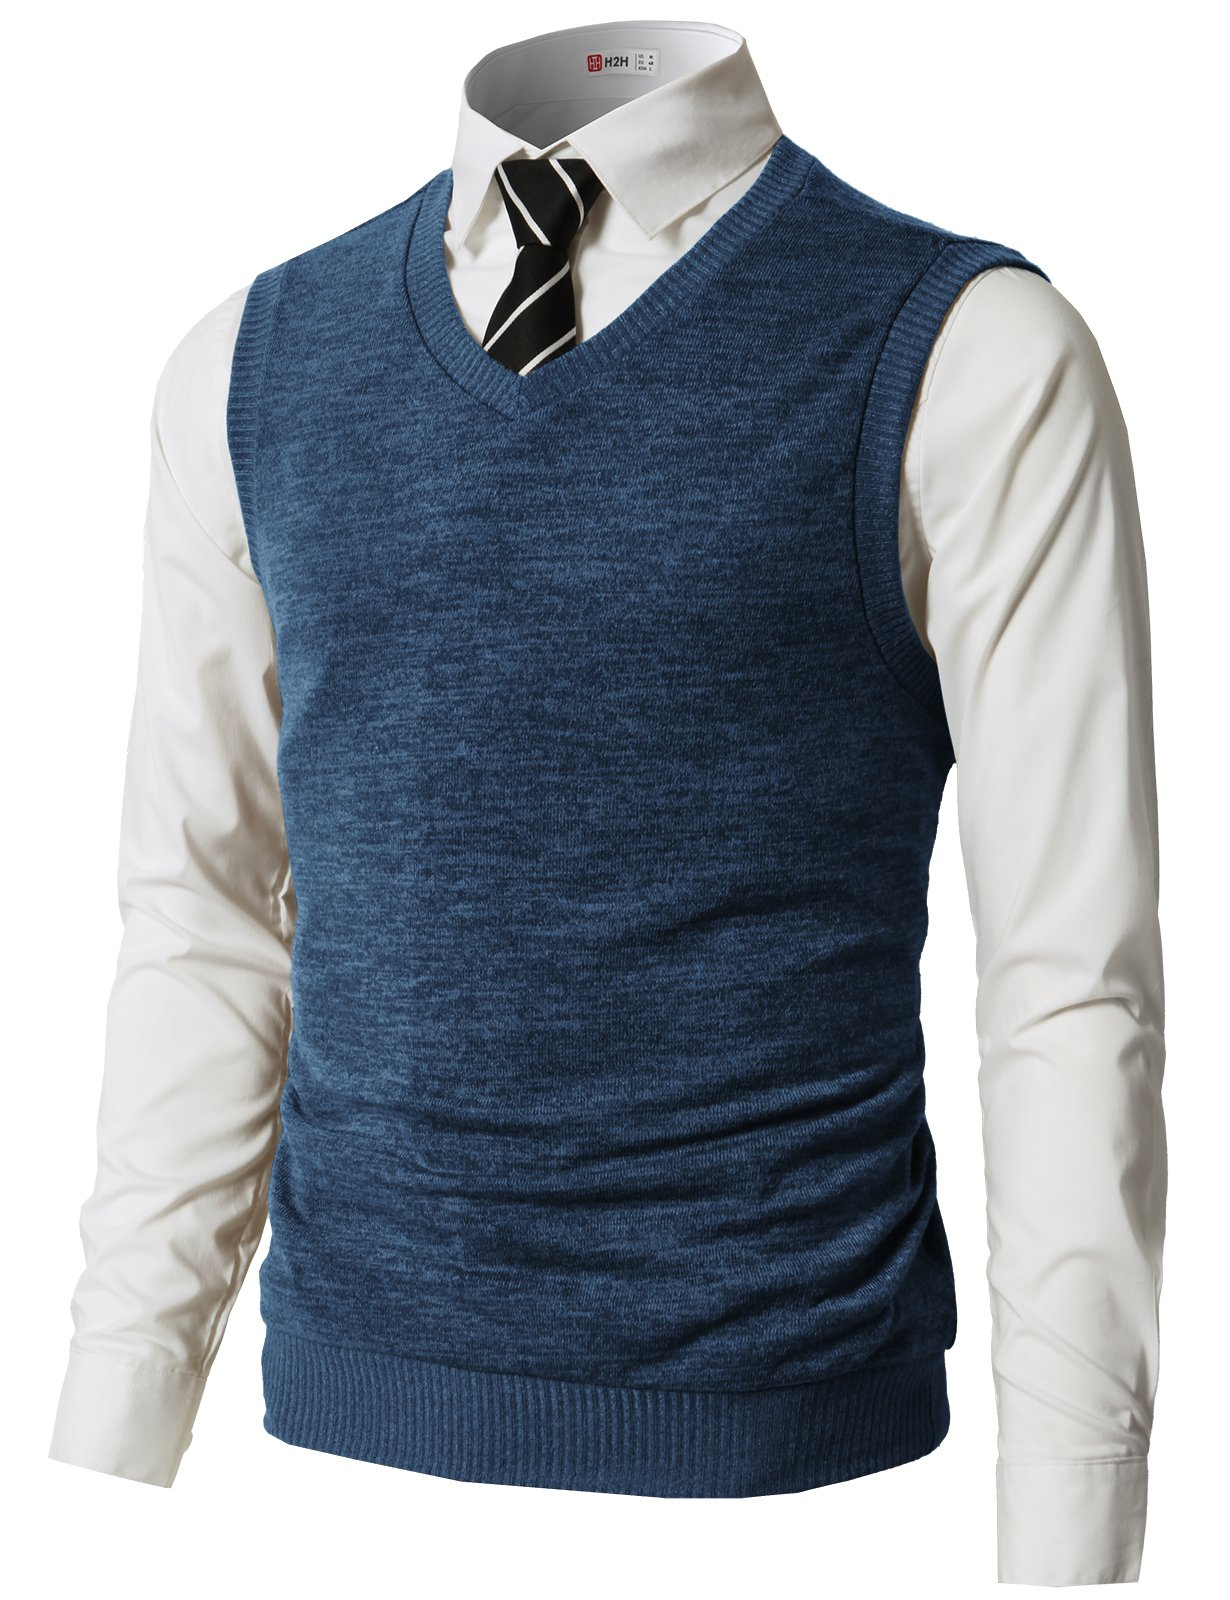 H2H Mens Casual Slim Fit Knitted V-Neck Button-Down Vests Of Various Colors Blue US M/Asia L (CMOV042)